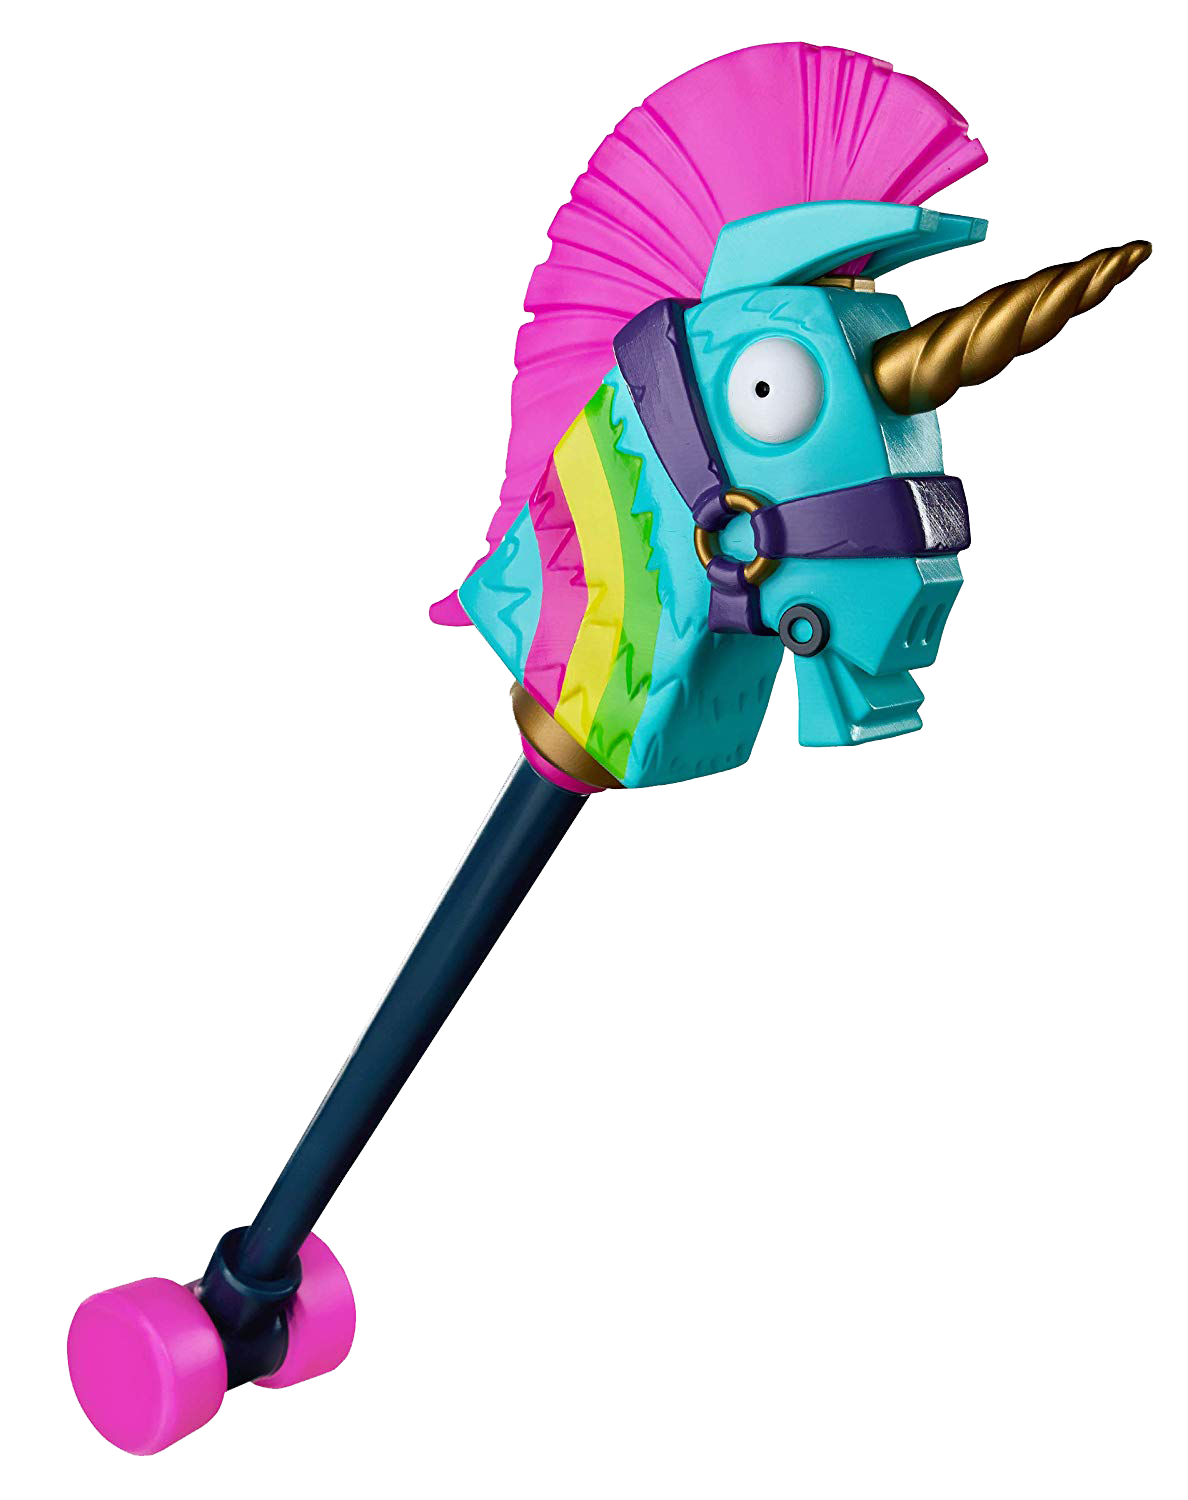 Fortnite clipart cool kid art. Rainbow smash pickaxe